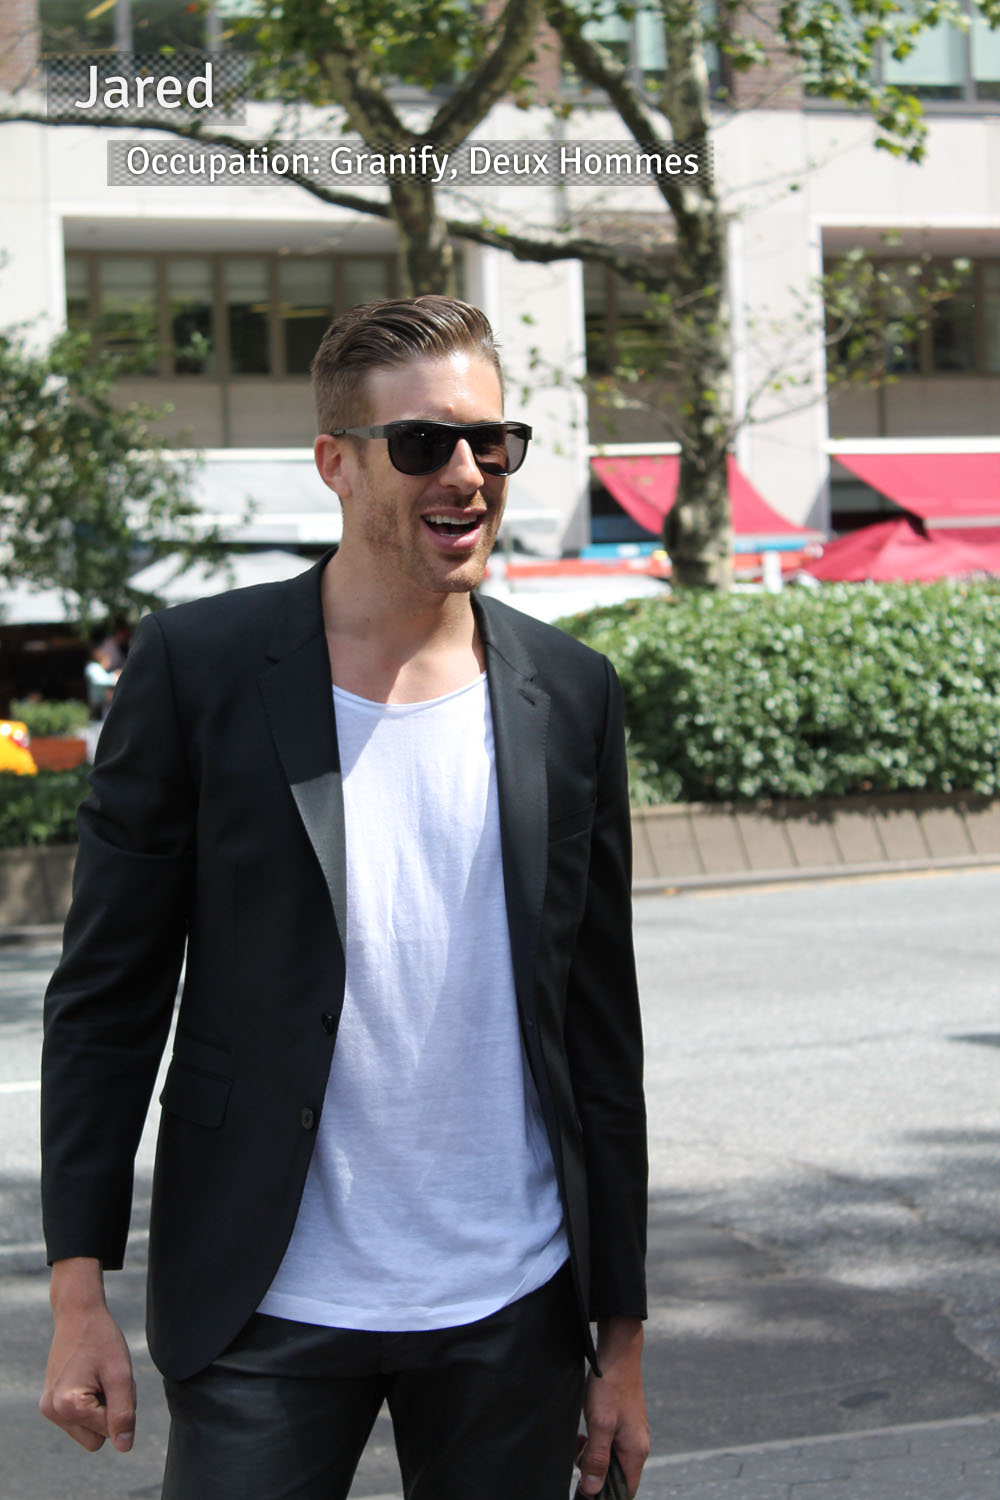 Corra's New York Fashion Week Street Style Blog | Day 1 - Jared from New York